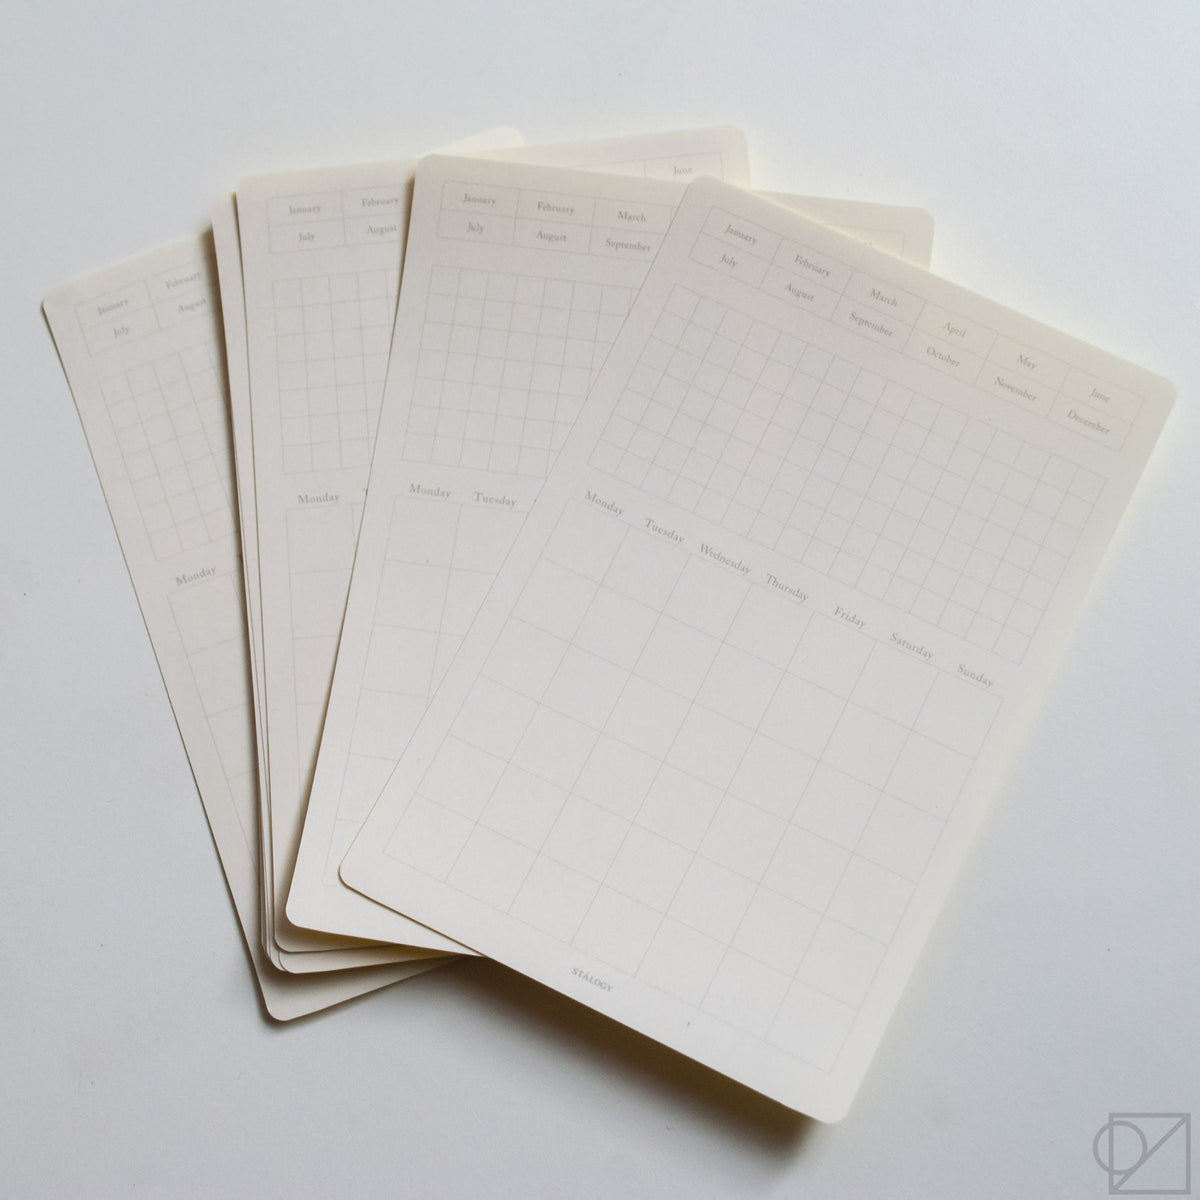 STÁLOGY 024 Removable Calendar Sticker includes 13 sheets